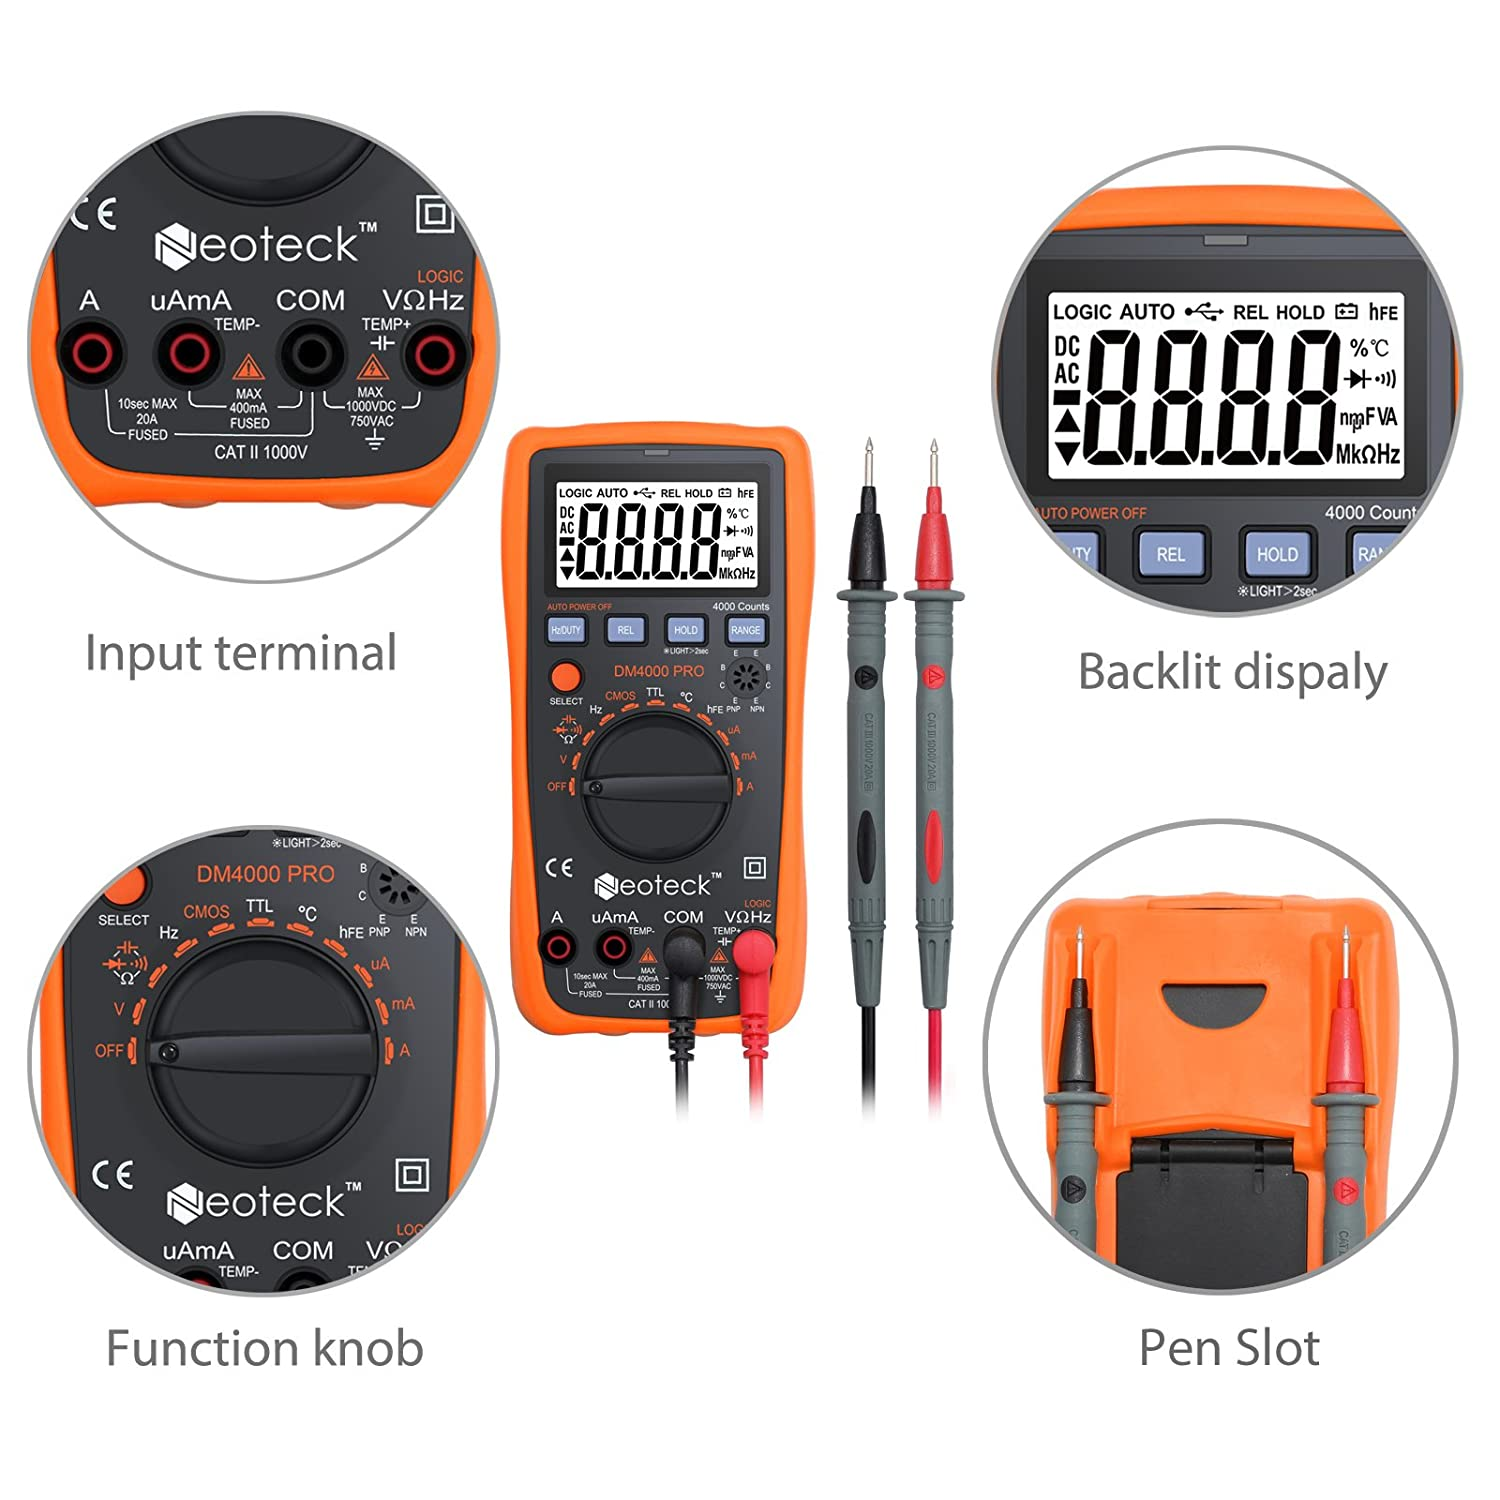 Neoteck Digital Multimeter 4000 Counts Auto Manual Range Lcd Display Backlight 2 Banana Plugs Ac Dc Voltage Current Resistance Capacity Frequency Temperature For School Laboratory Factory Etc Orange Business Industry Science